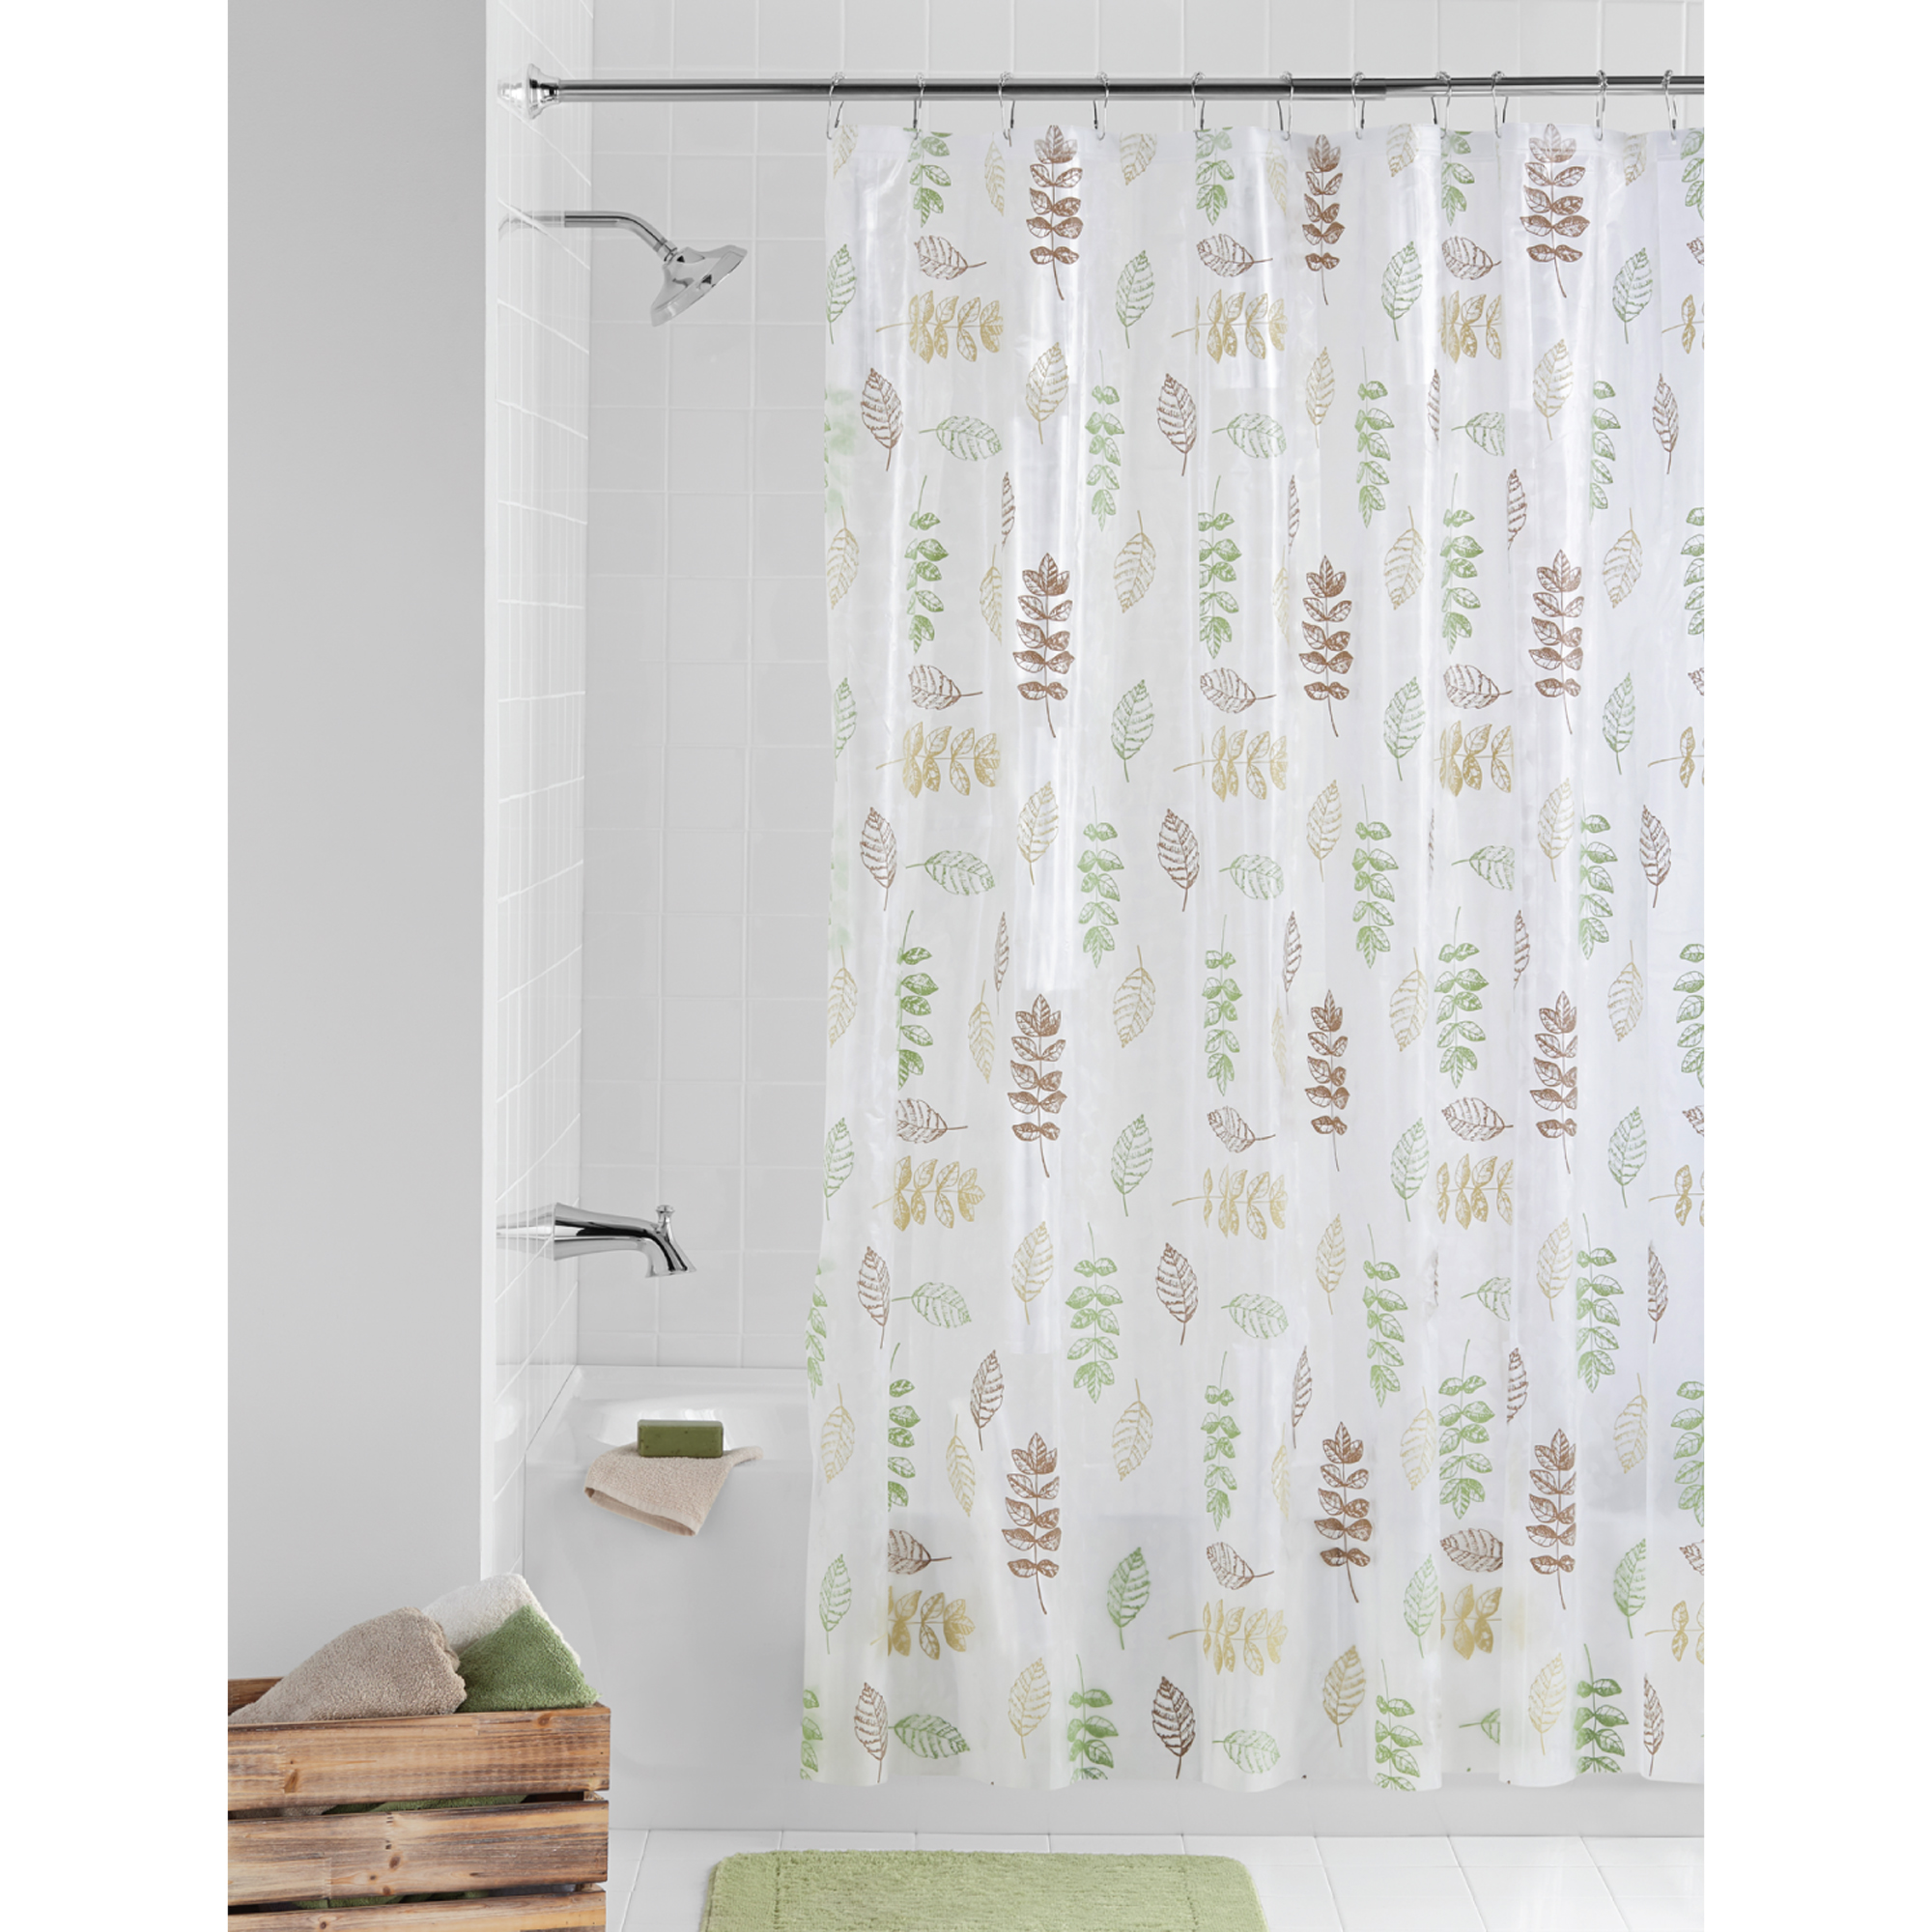 82 Shower Curtain Mainstays Peva Shower Curtain Bathroom Set 13 Piece